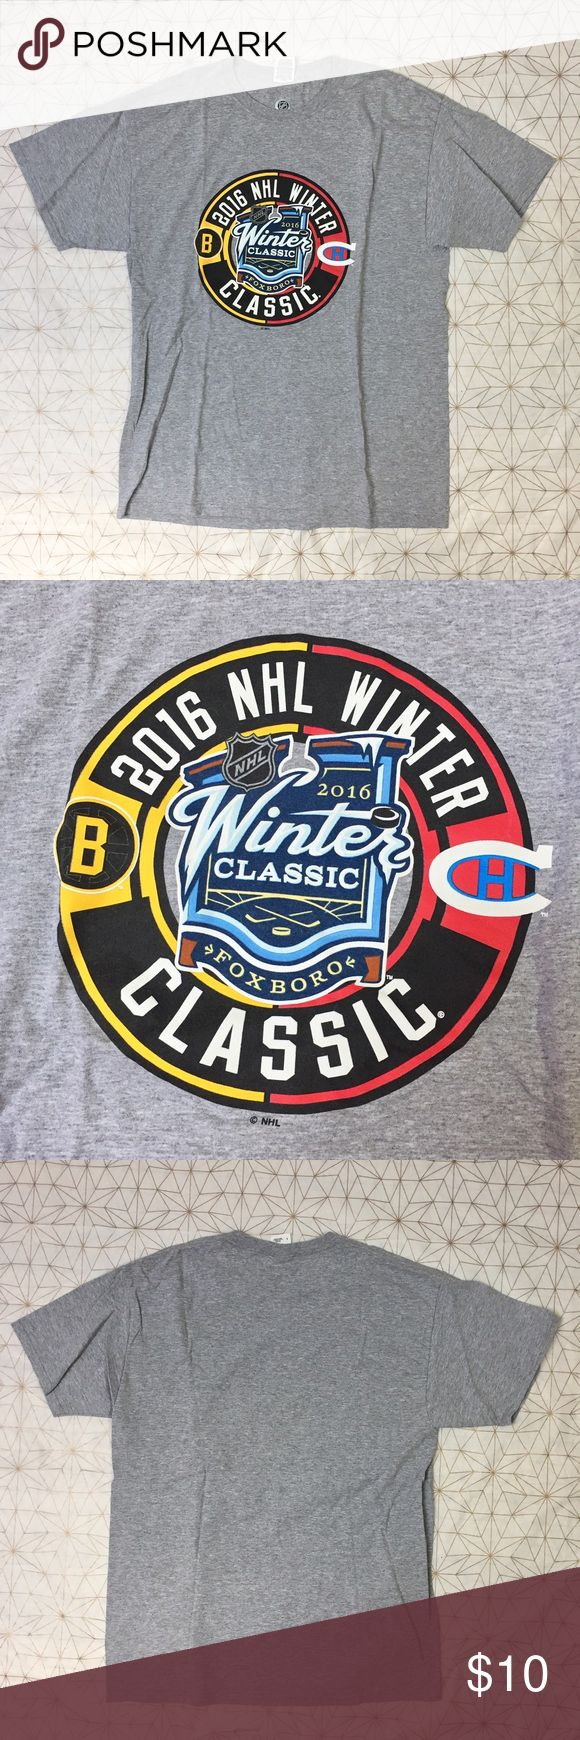 """Men's 2016 Winter Classic Boston vs Canadians tee - Size: L - Material: 90% cotton, 10% polyester  - Condition: excellent - Color: gray, black, red, white, blue, yellow - Pockets: no - Lined: no - Closure: no - Extra notes: Boston Bruins versus Montreal Canadians 2016 Winter Classic  *Measurements:  Chest: 20.5"""" flat Waist: 19.75"""" flat Length: 29"""" Sleeve: 18"""" NHL Shirts Tees - Short Sleeve"""